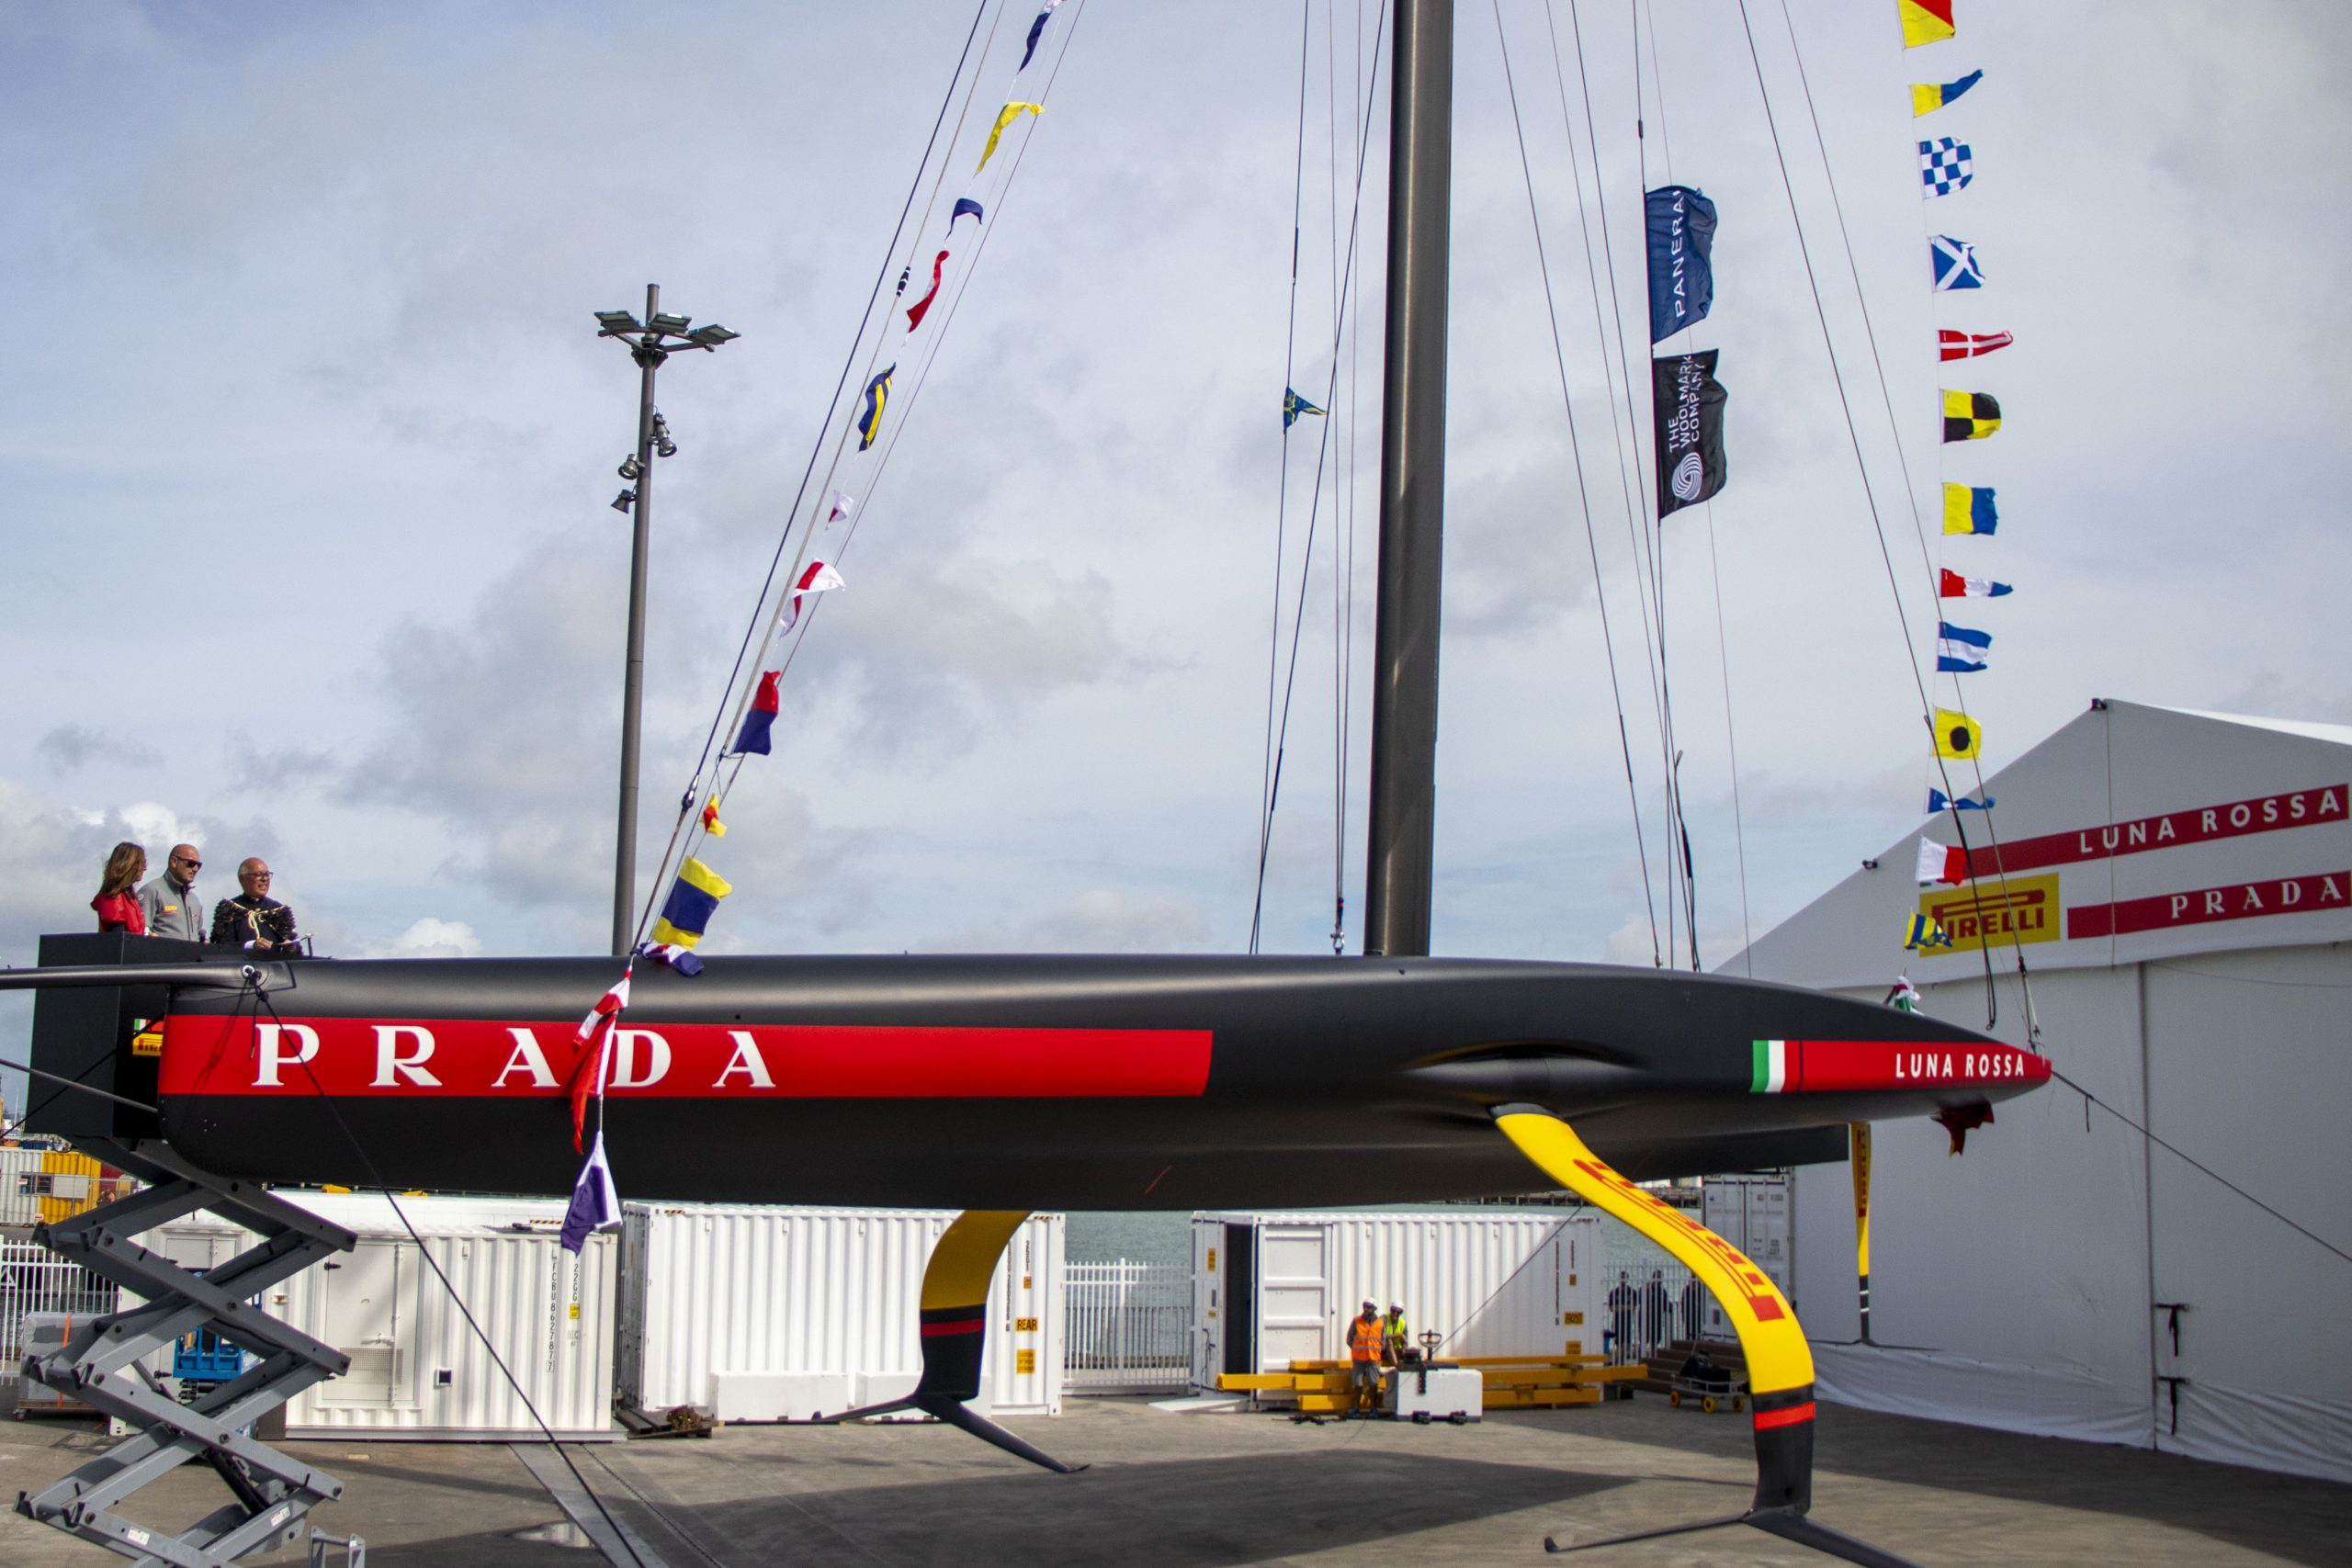 The 36th America's Cup has been postponed because of COVID lockdown in New Zealand.